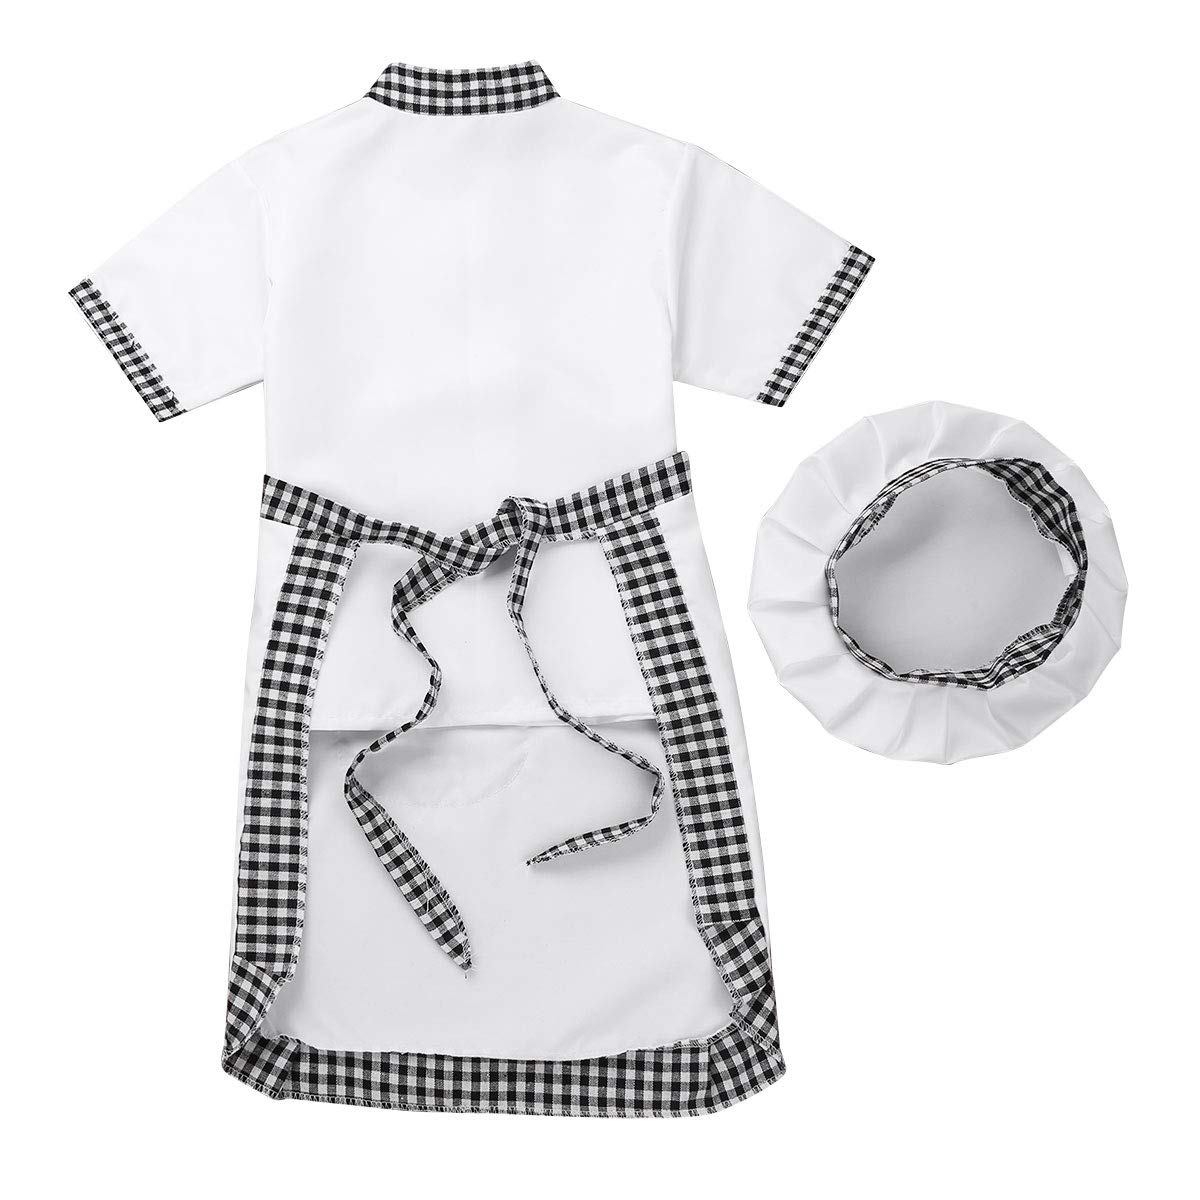 MSemis Child Boys Girls Halloween Chef Cosplay Costume with Apron and Chef Hat Outfits Set Fancy Dress Up